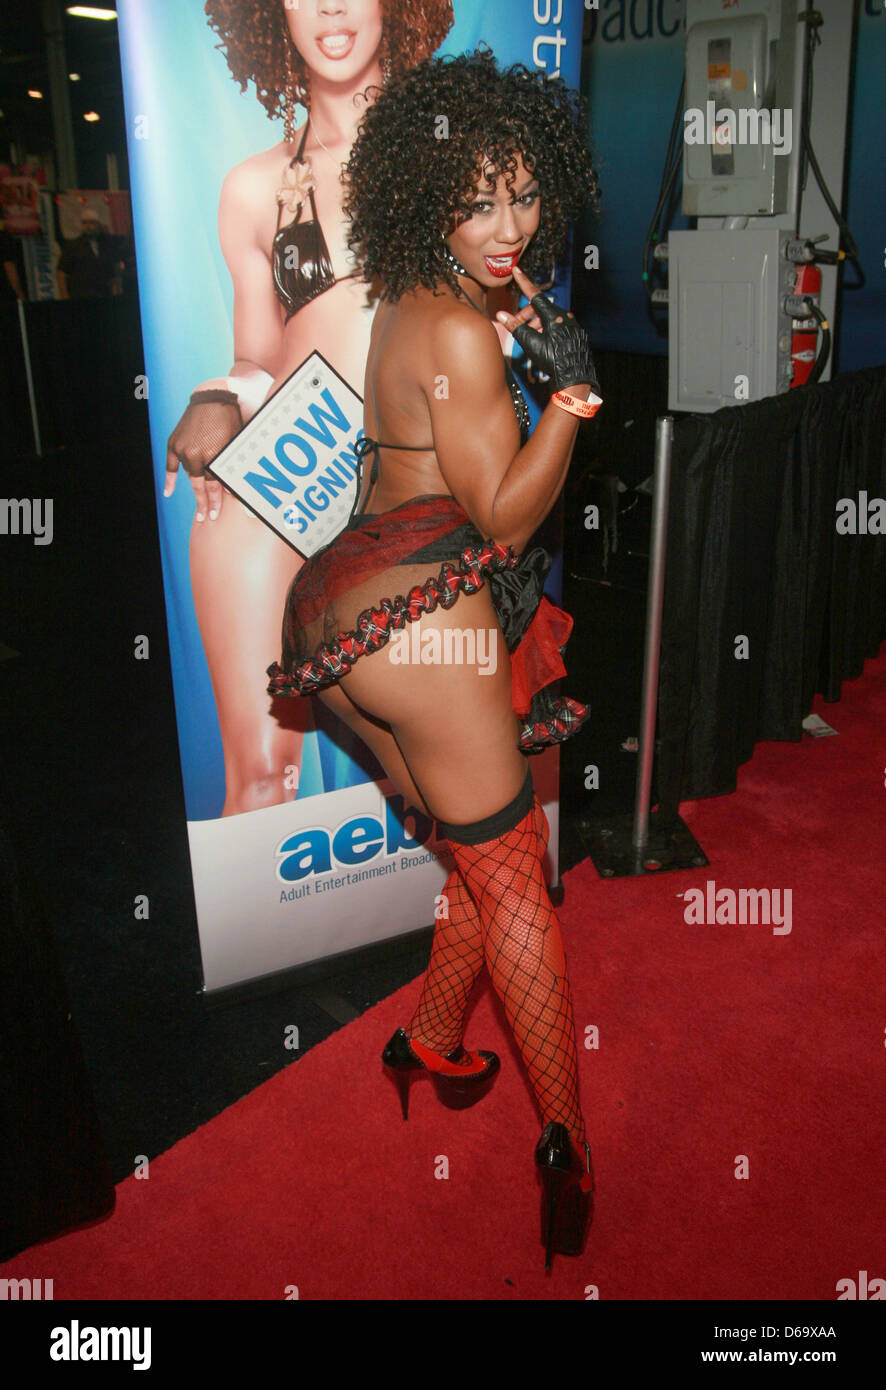 How old is misty stone